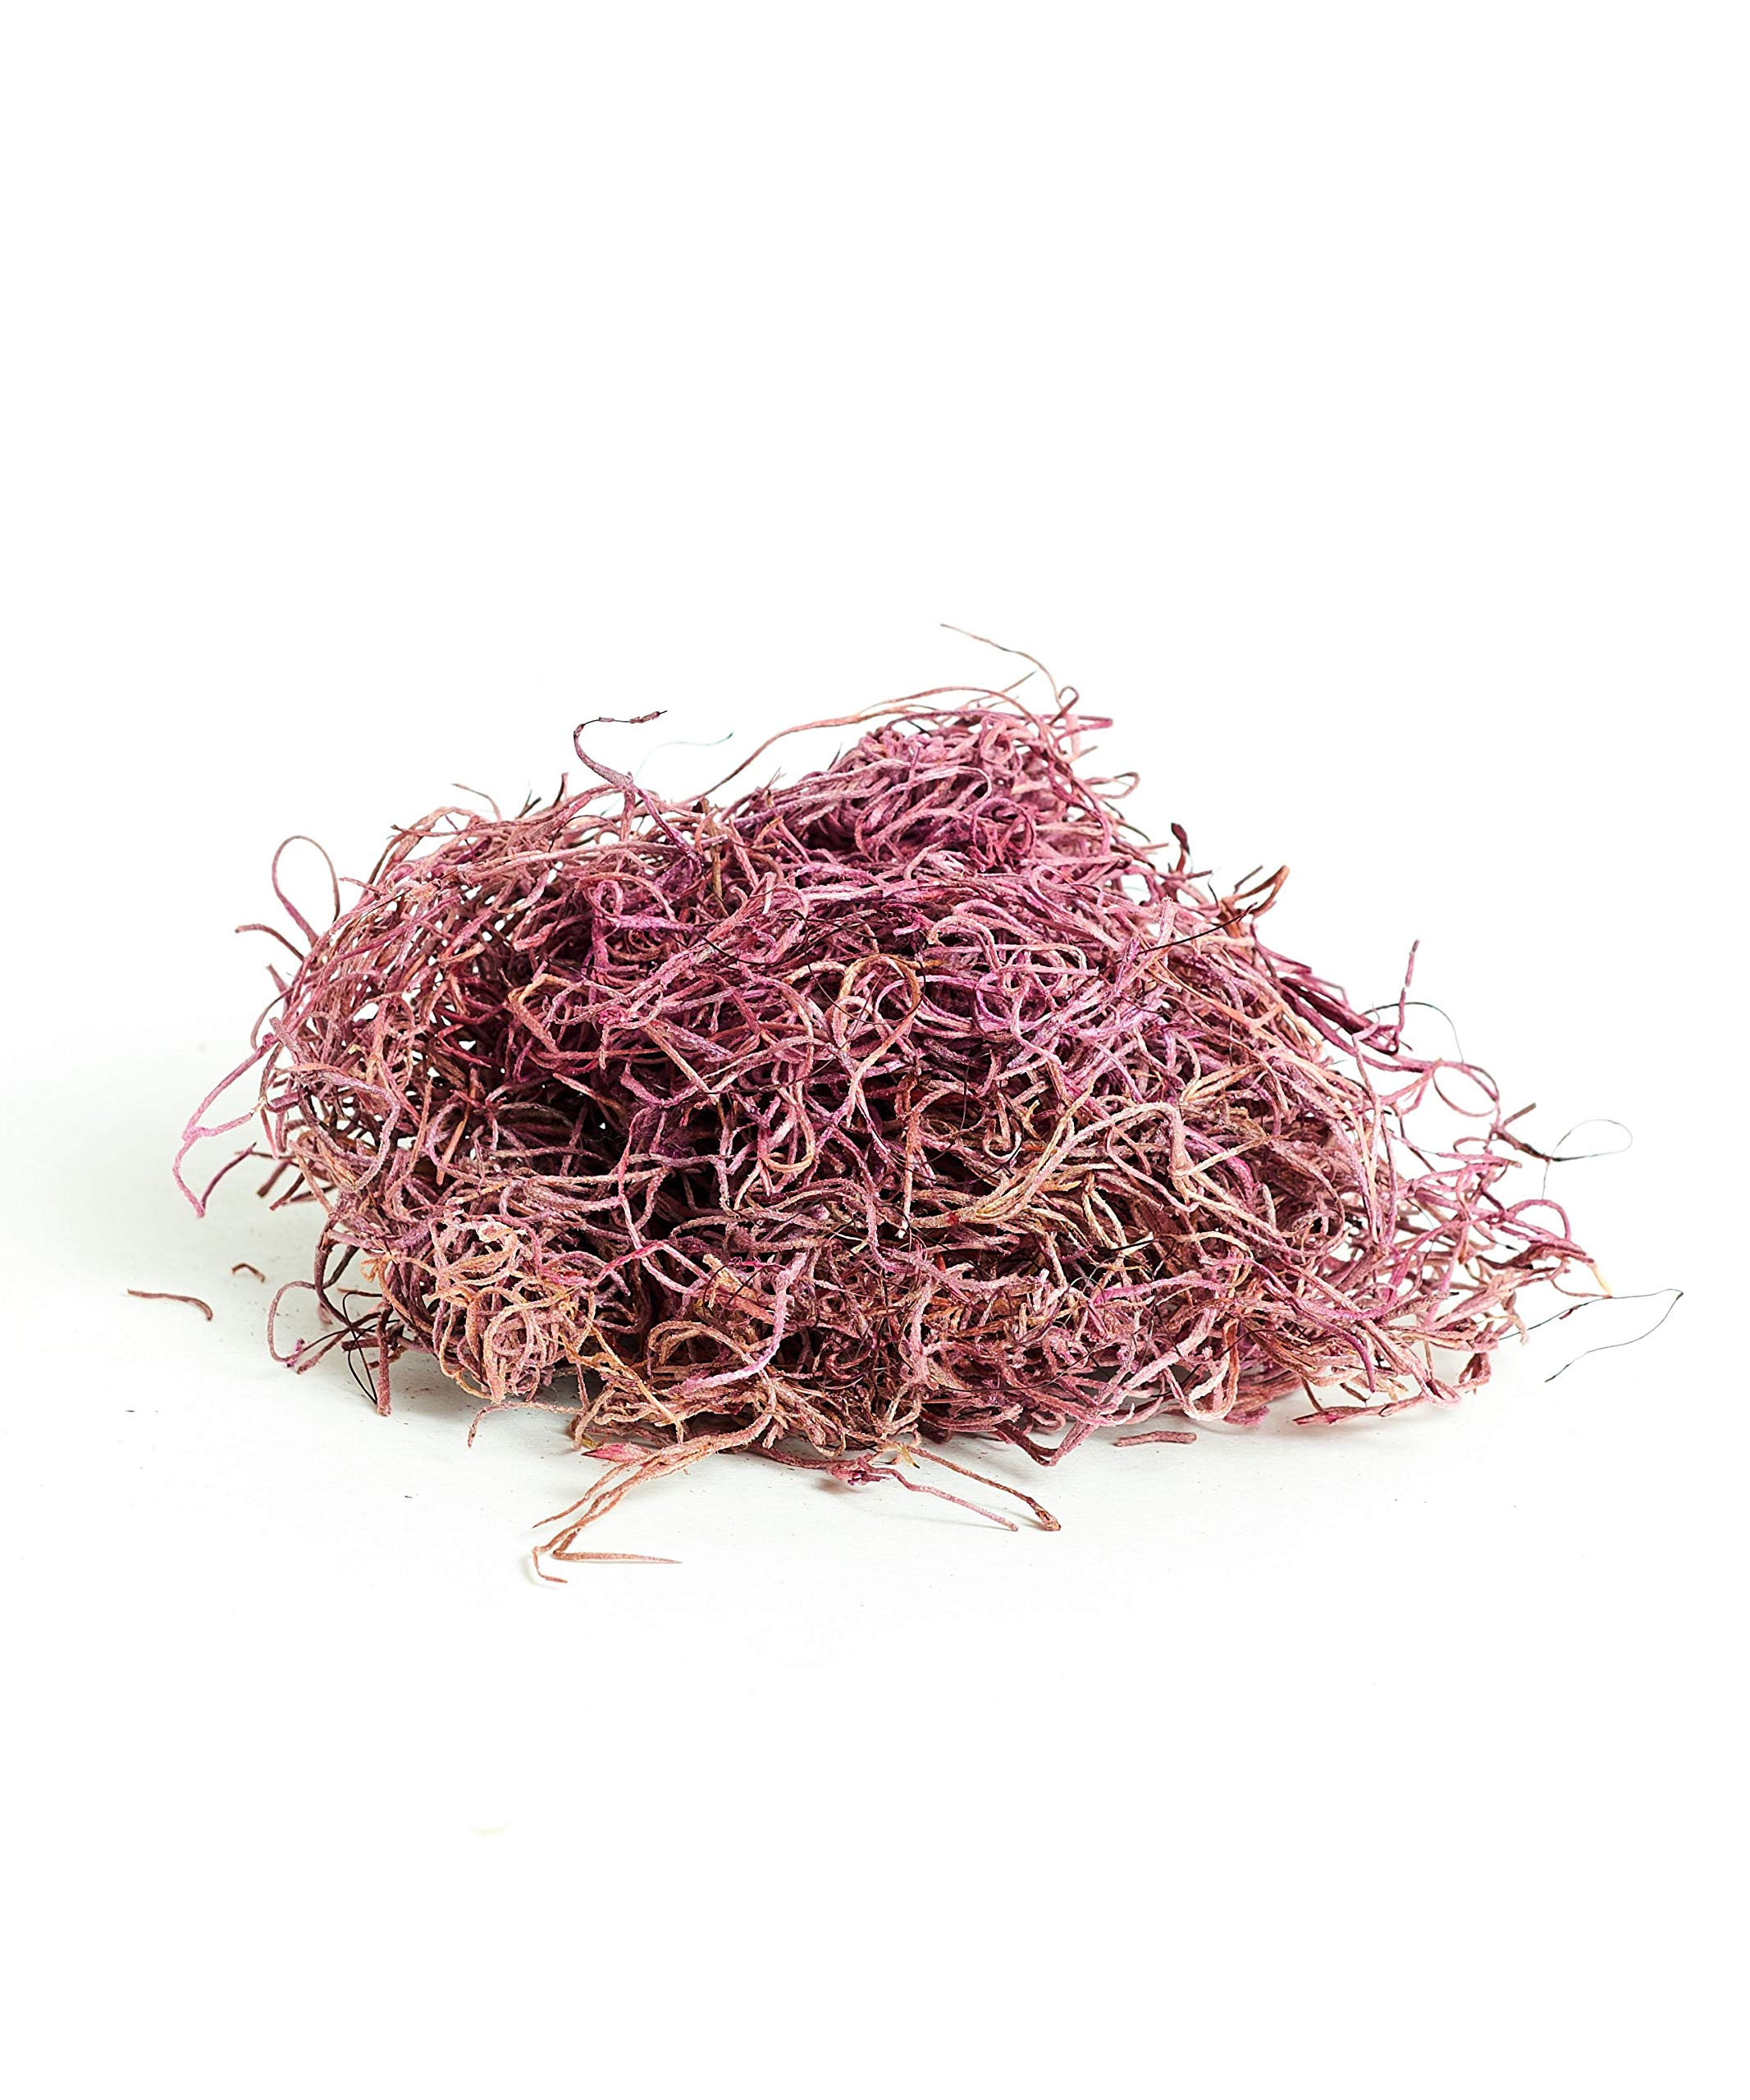 Shop Succulents | Spanish Preserved Moss for for Fairy Gardens, Terrariums, Craft or Floral Projects Weddings, Other Arts, 6 OZ, Dusty Rose